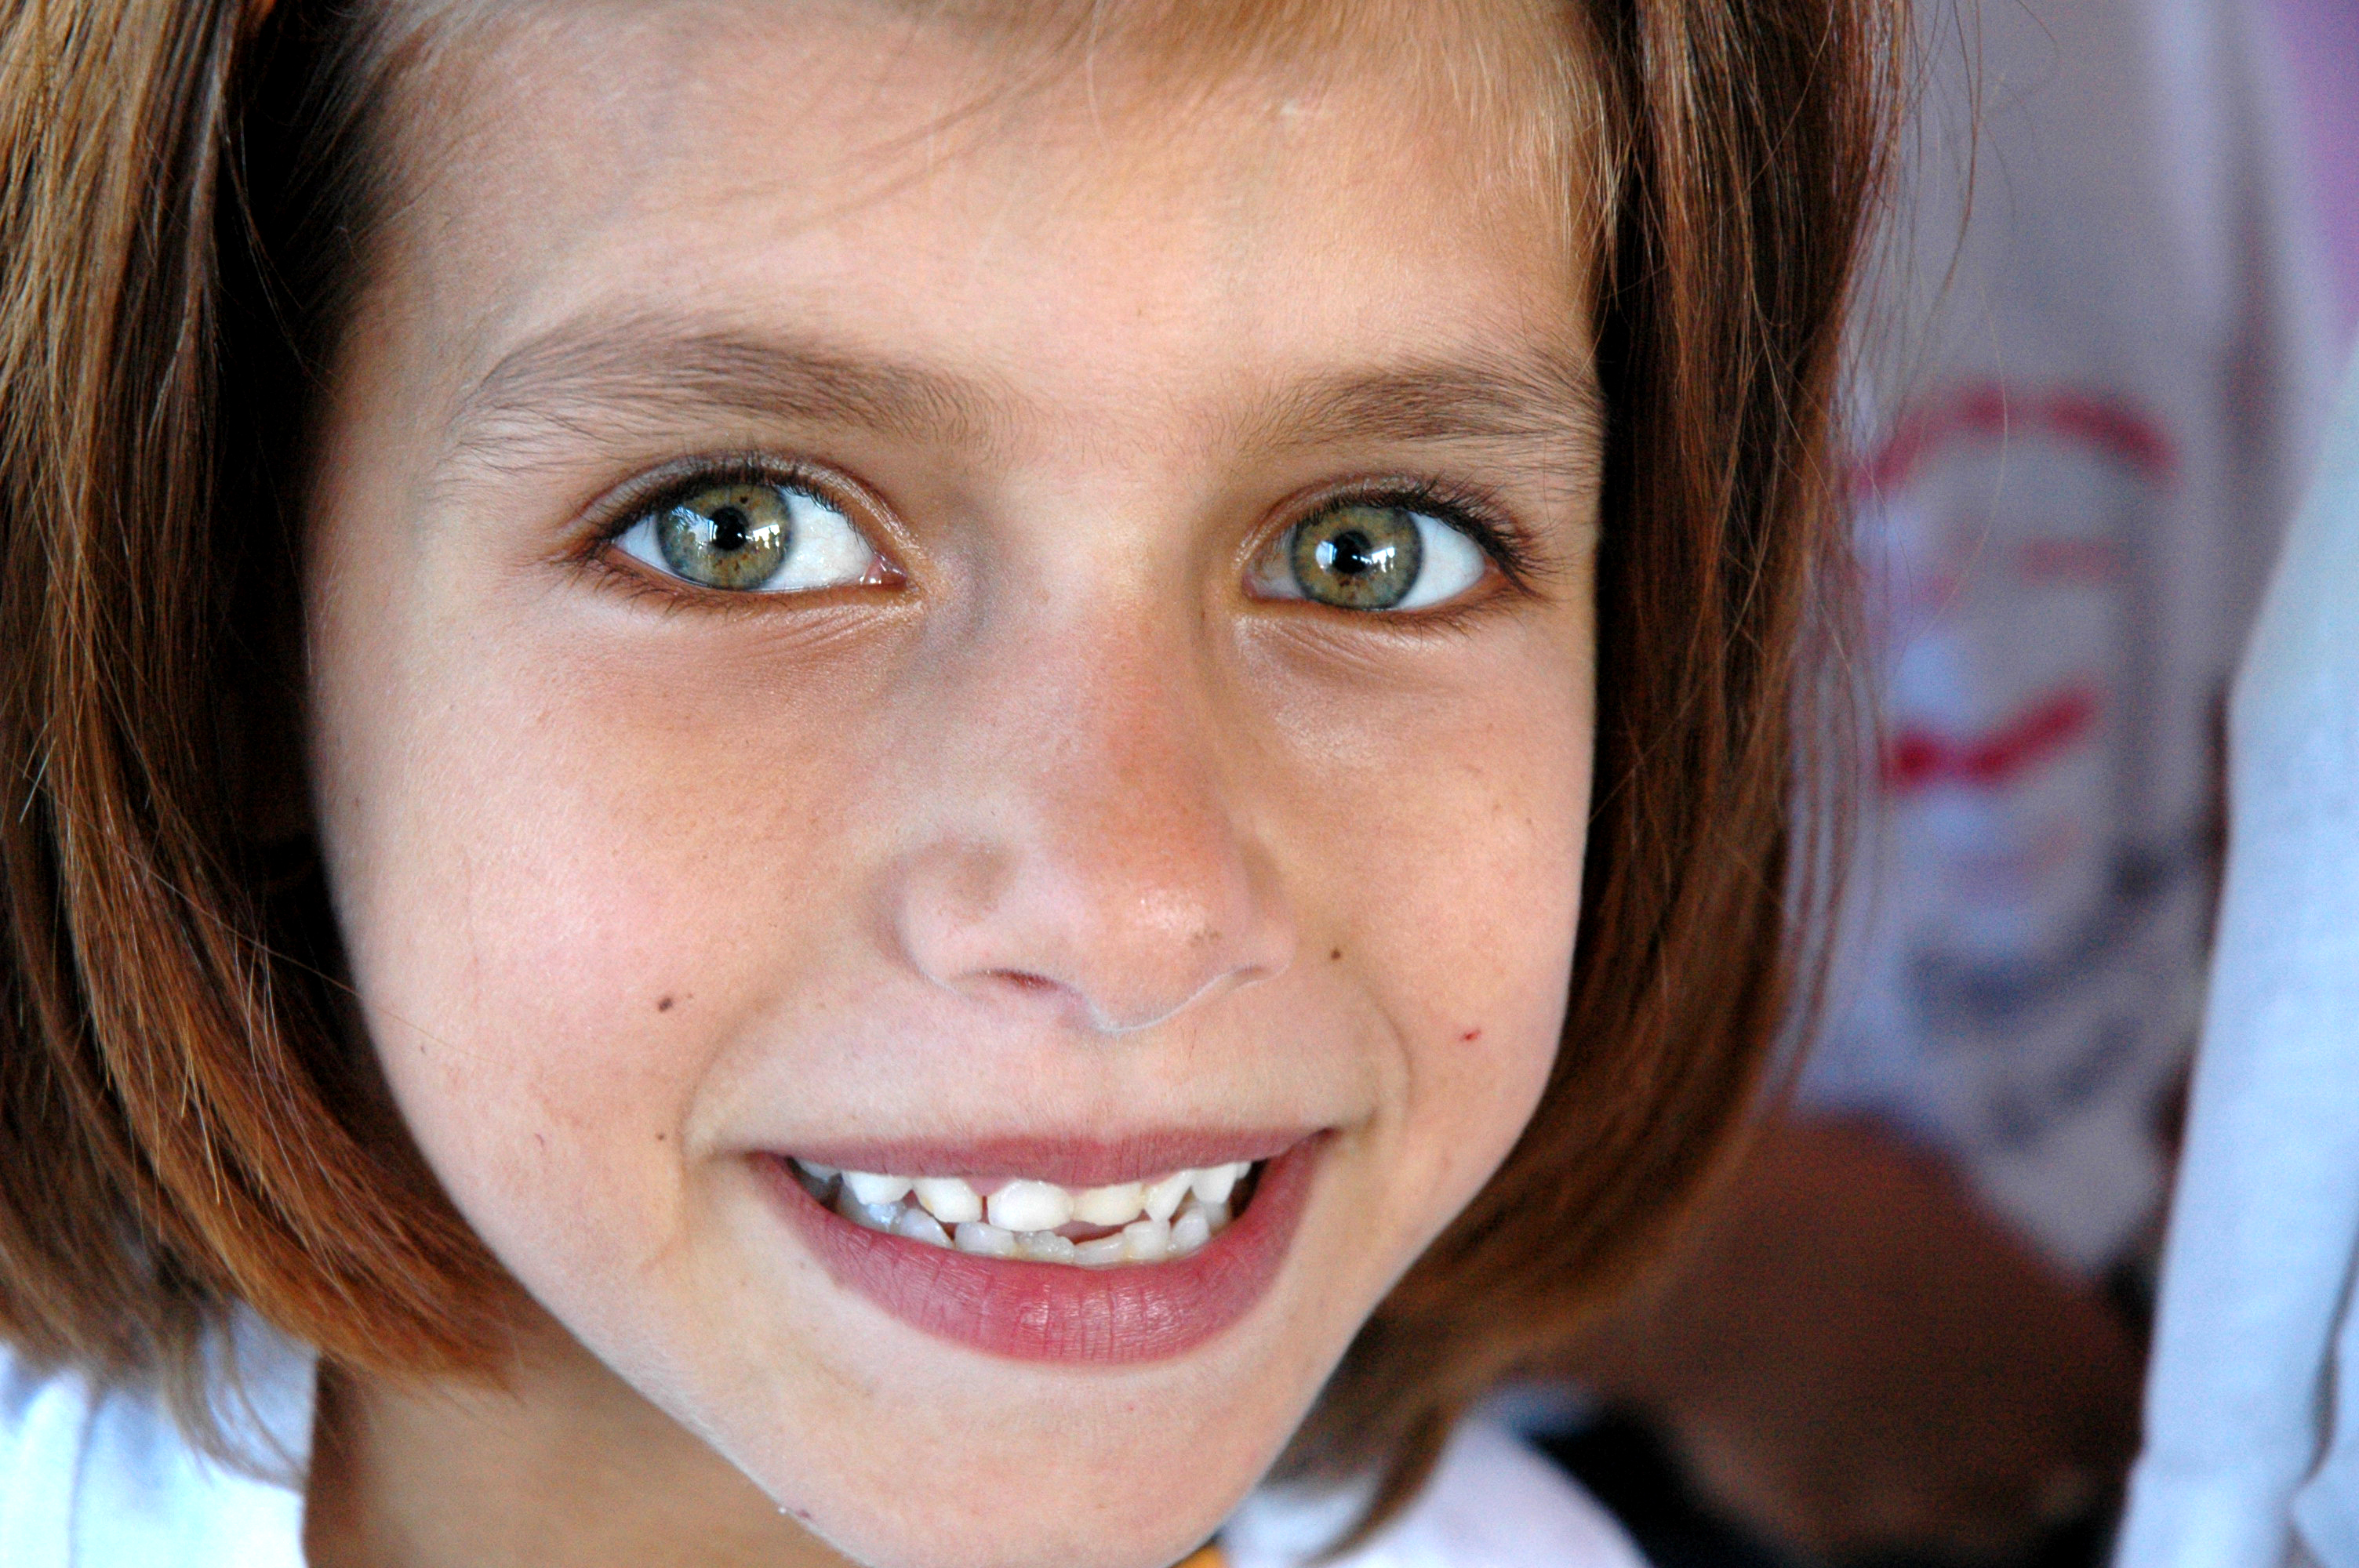 A Palestinian girl with natural chestnut hair.